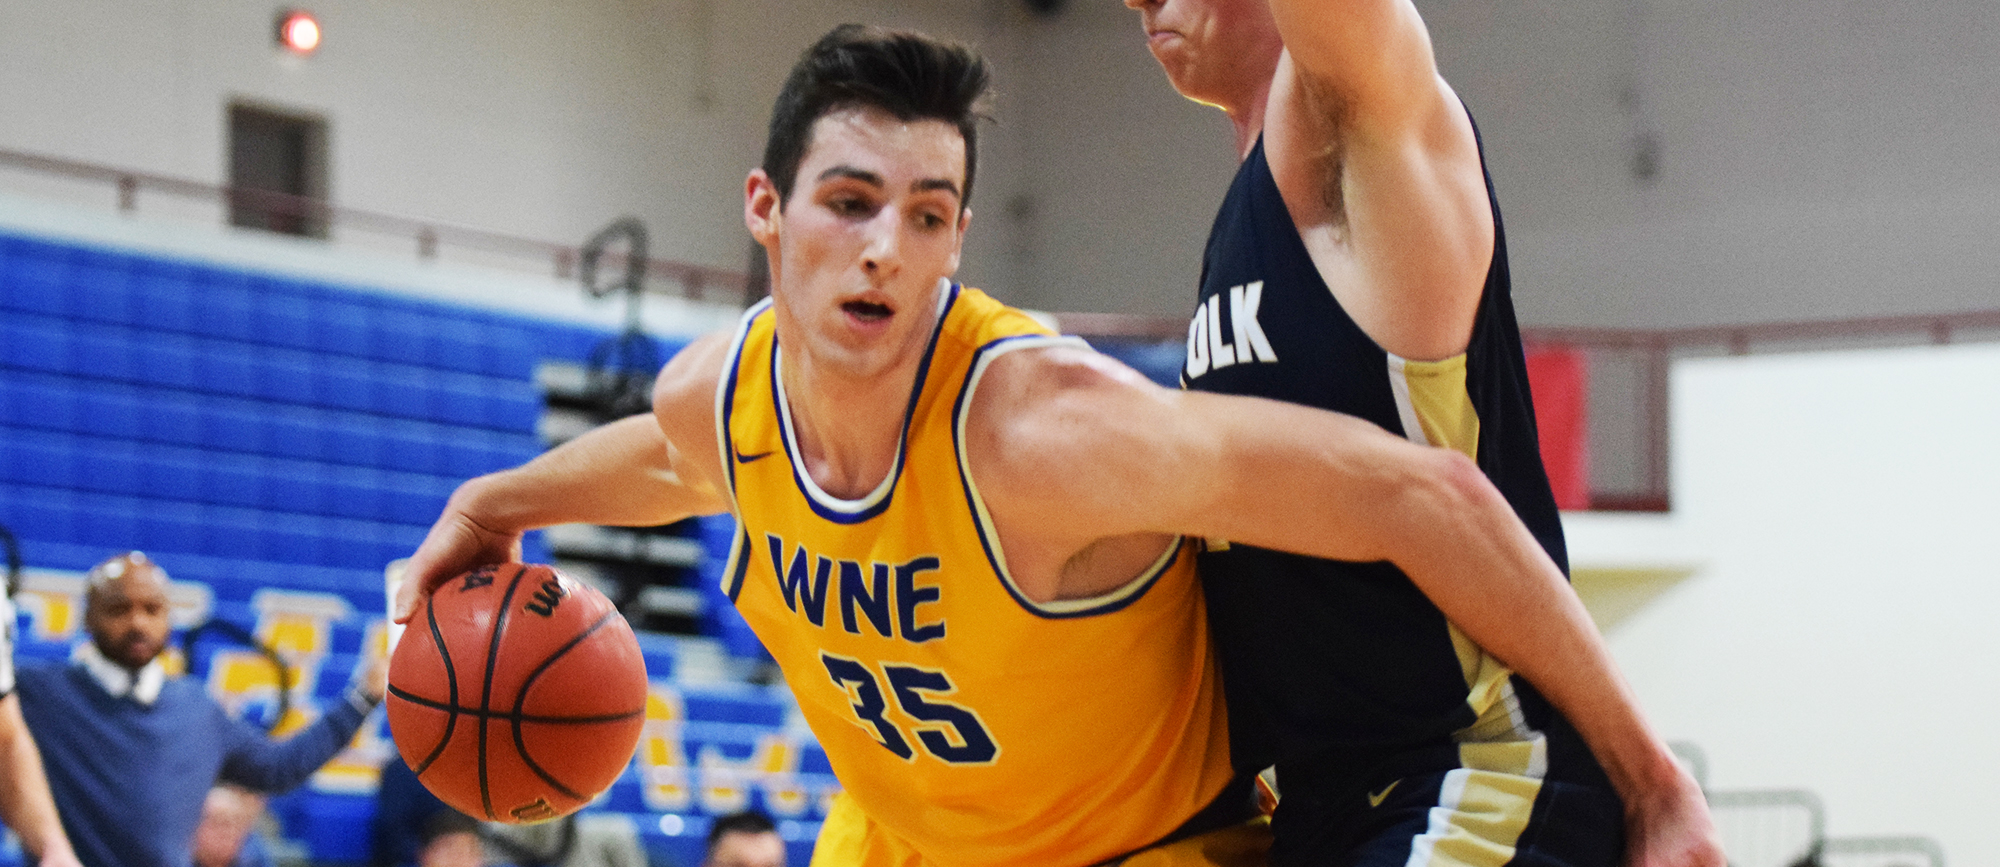 Sophomore Zach Tavitian finished with 16 points in Western New England's 91-77 loss to Suffolk on Monday night. (Photo by Rachael Margossian)